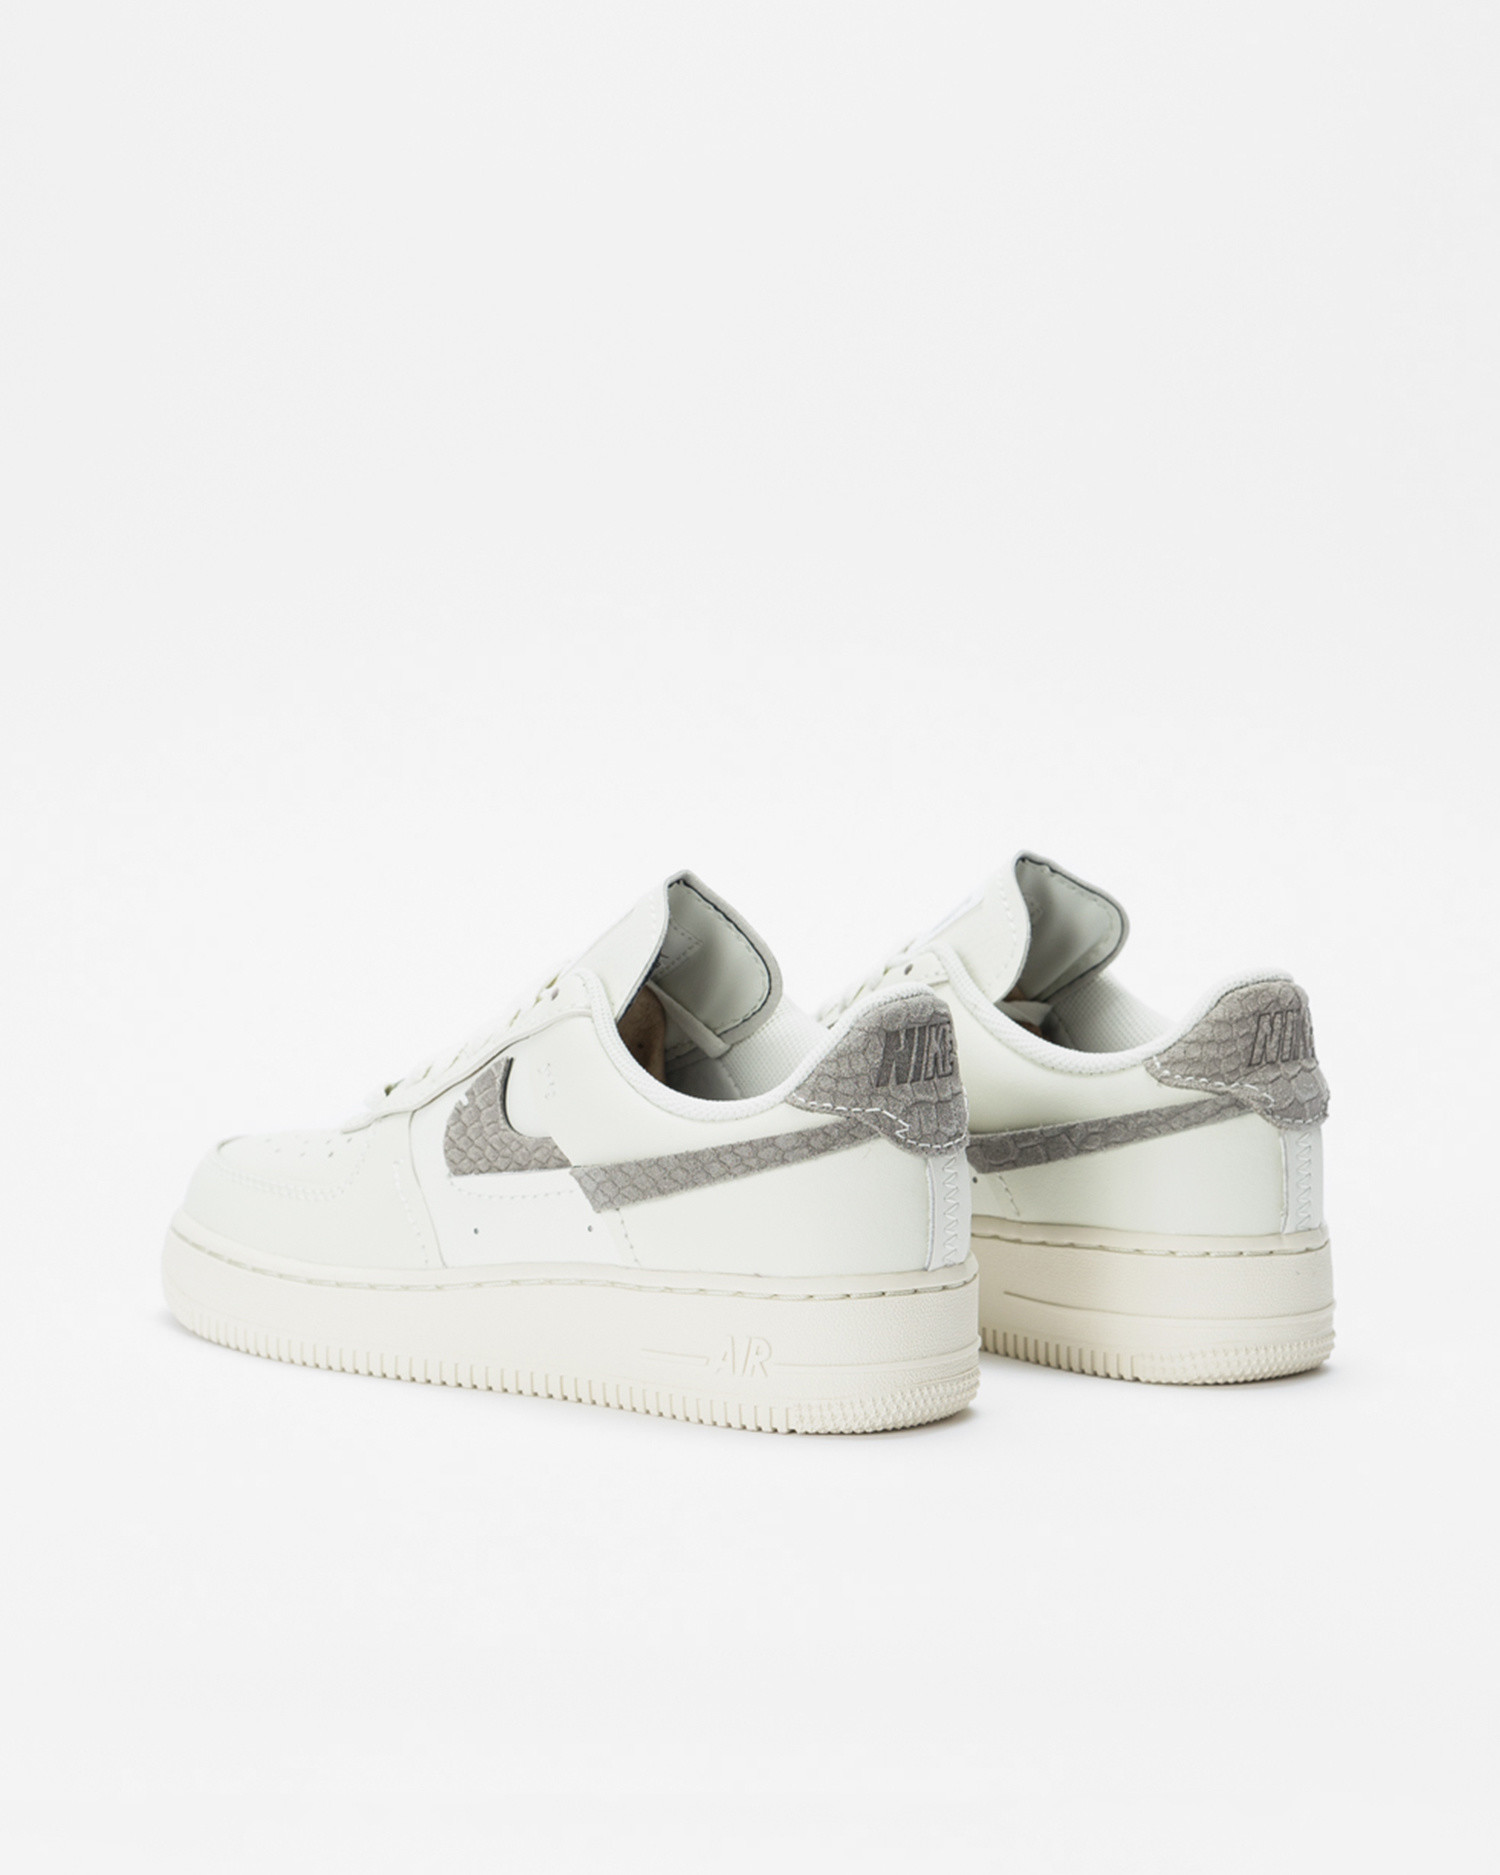 Nike af1 lxx Sea glass/light army